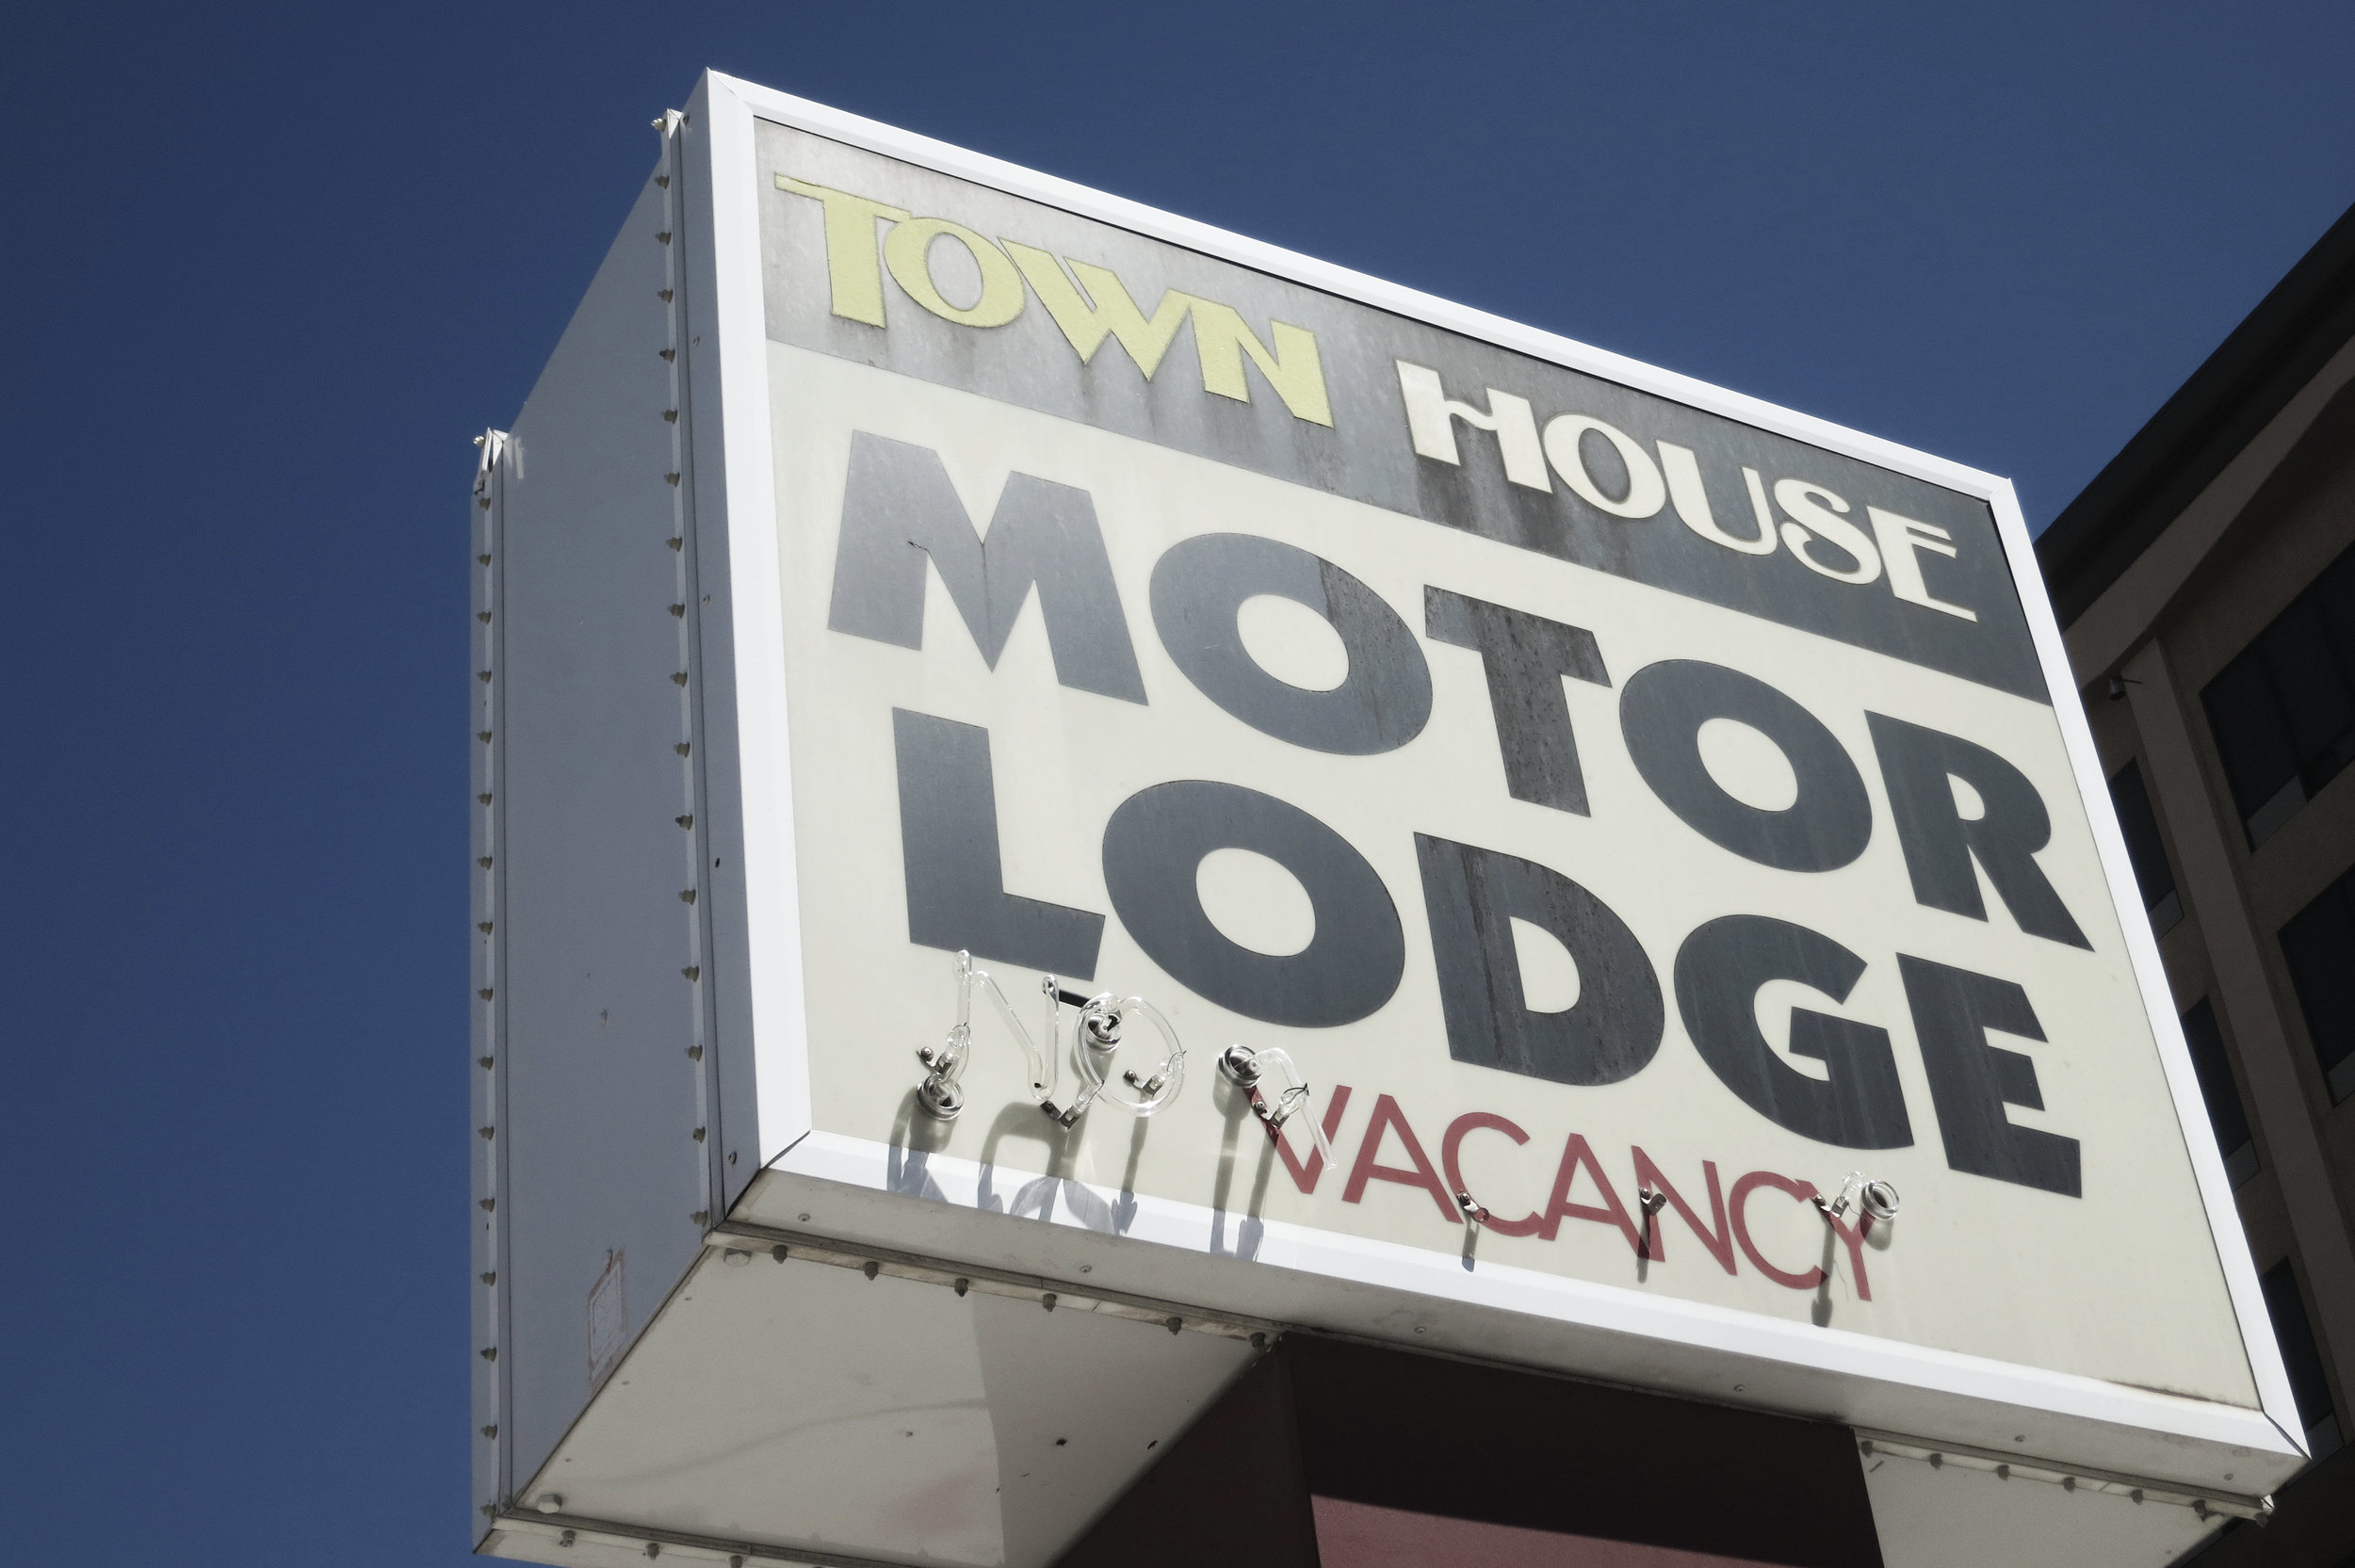 Cheap, convenient and easy to access are some of the reasons many motel rooms fill up in Reno, and serve as housing for Reno's low-income population.